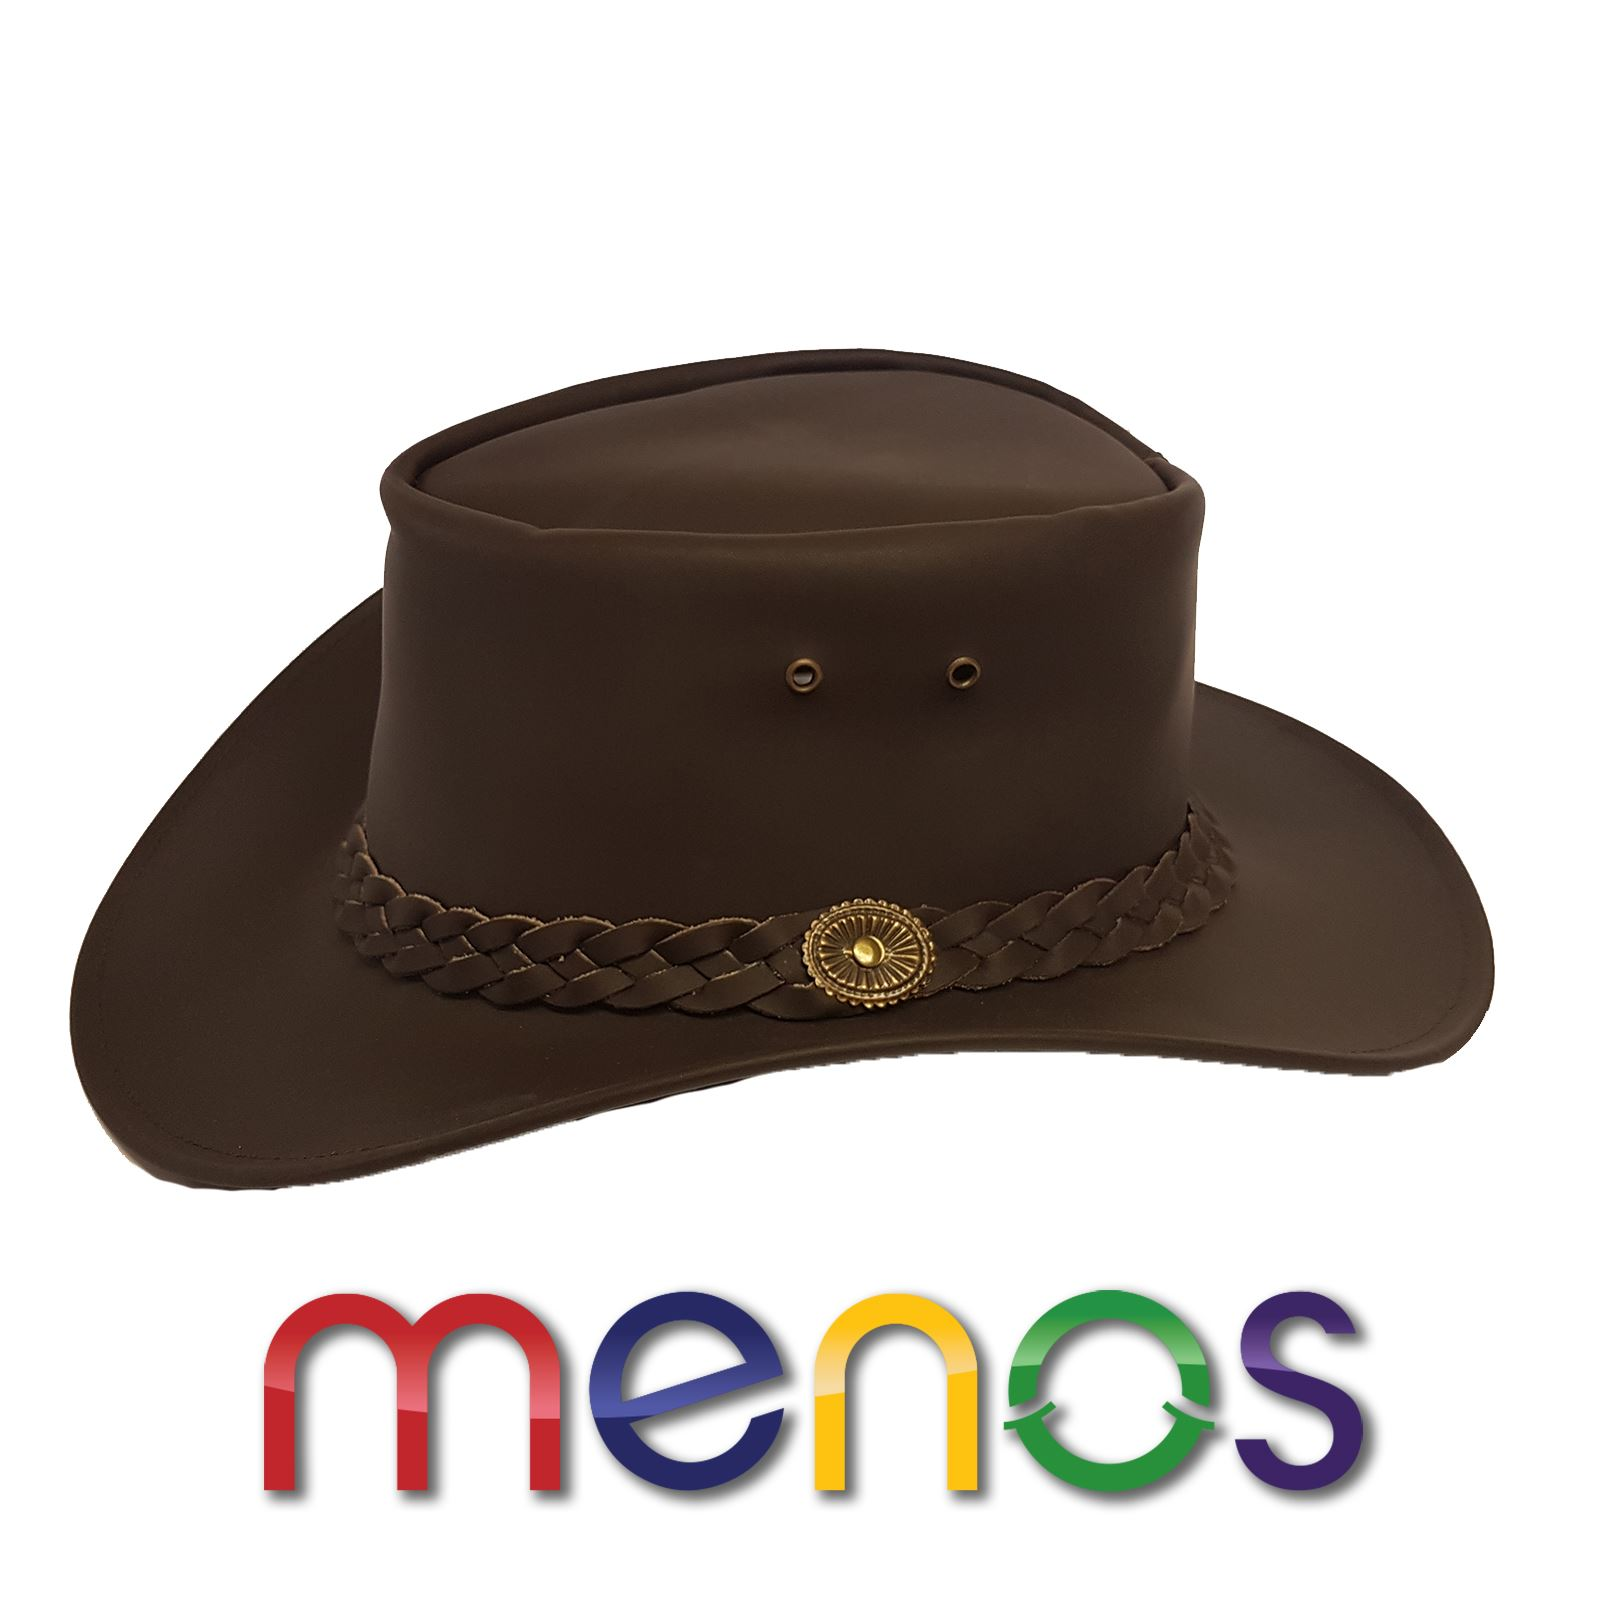 d958d59fa30 Details about AUTHENTIC OUTBACK LEATHER COWBOY WESTERN AUSSIE STYLE BUSH HAT  BROWN LEATHER. Free Chin Strap ...